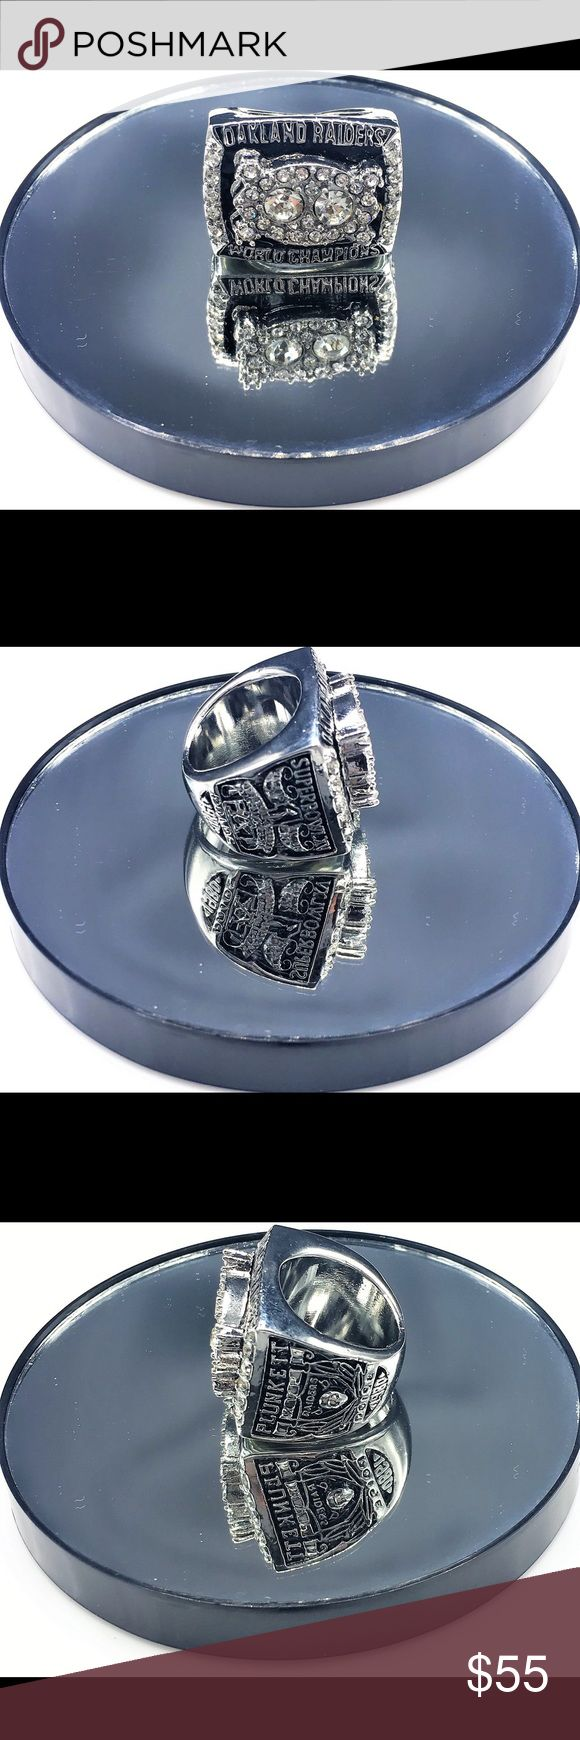 """Super Bowl 15 (XV) Replica Ring - Oakland Raiders Super Bowl 15 (XV) Replica Ring  Oakland Raiders 27 Philadelphia Eagles 10 Jan. 25, 1981  """"Plunkett Takes Charge""""  Size 11 but meant for Collectible Souvenir. Perfect Gift for any true Oakland Raiders Fan. Accessories Jewelry"""